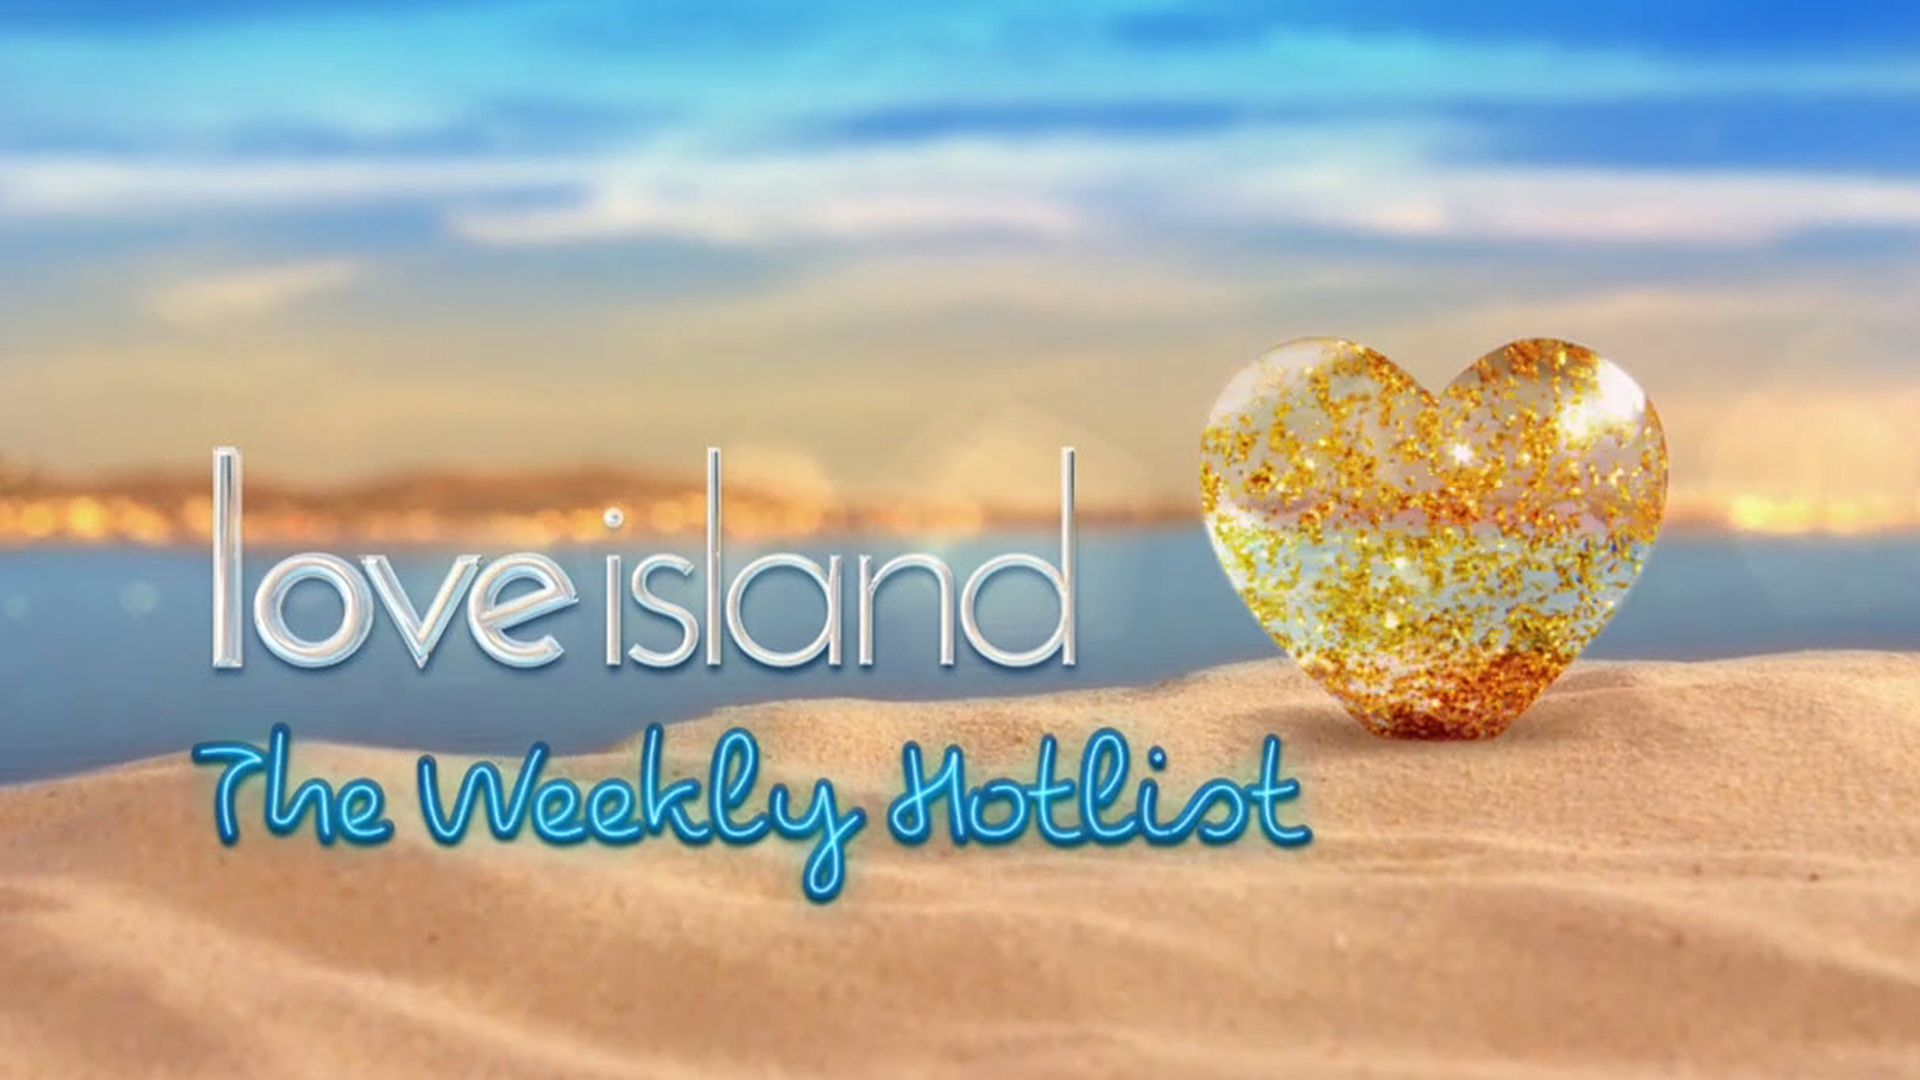 watch love island uk season 4, catch up tv